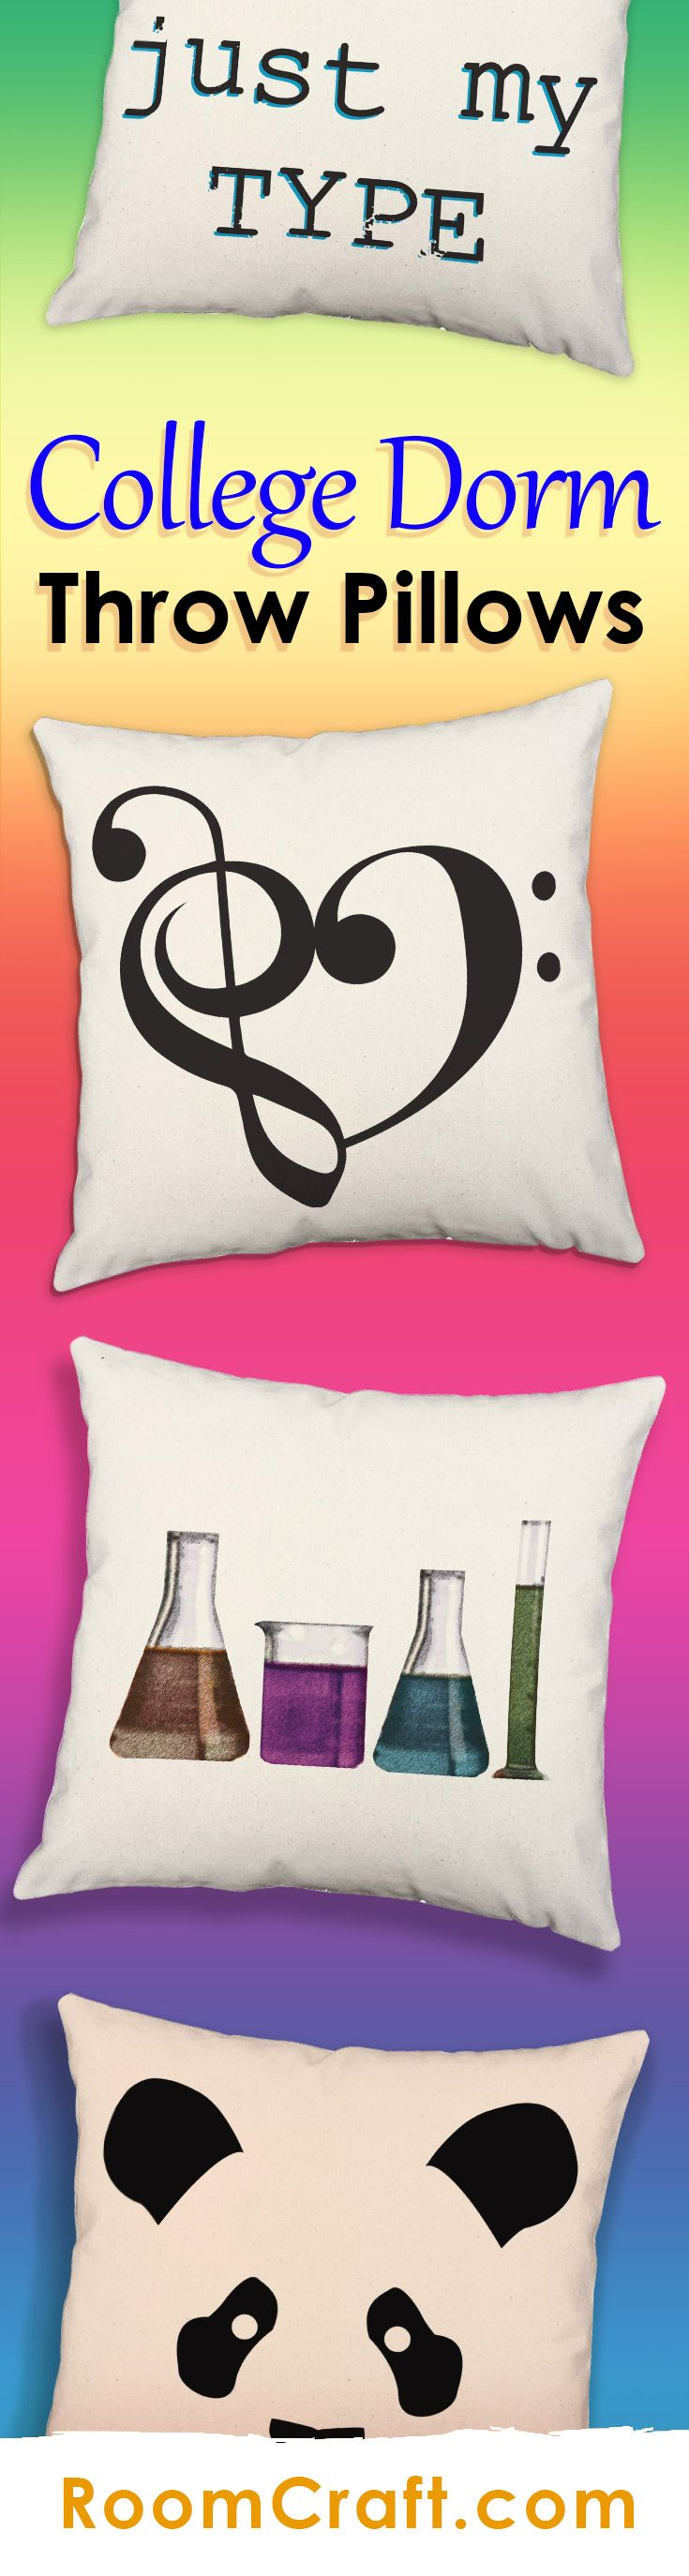 Add these adorable throw pillows to your new dorm room for a pop of color and inspiration! All of our designs are offered in multiple colors, sizes and fabrics making them perfect for your dorm bed. These fun pillow covers are made to order in the USA and feature 3 wooden buttons on the back for closure. Choose your favorite and create a truly unique pillow set! #roomcraft